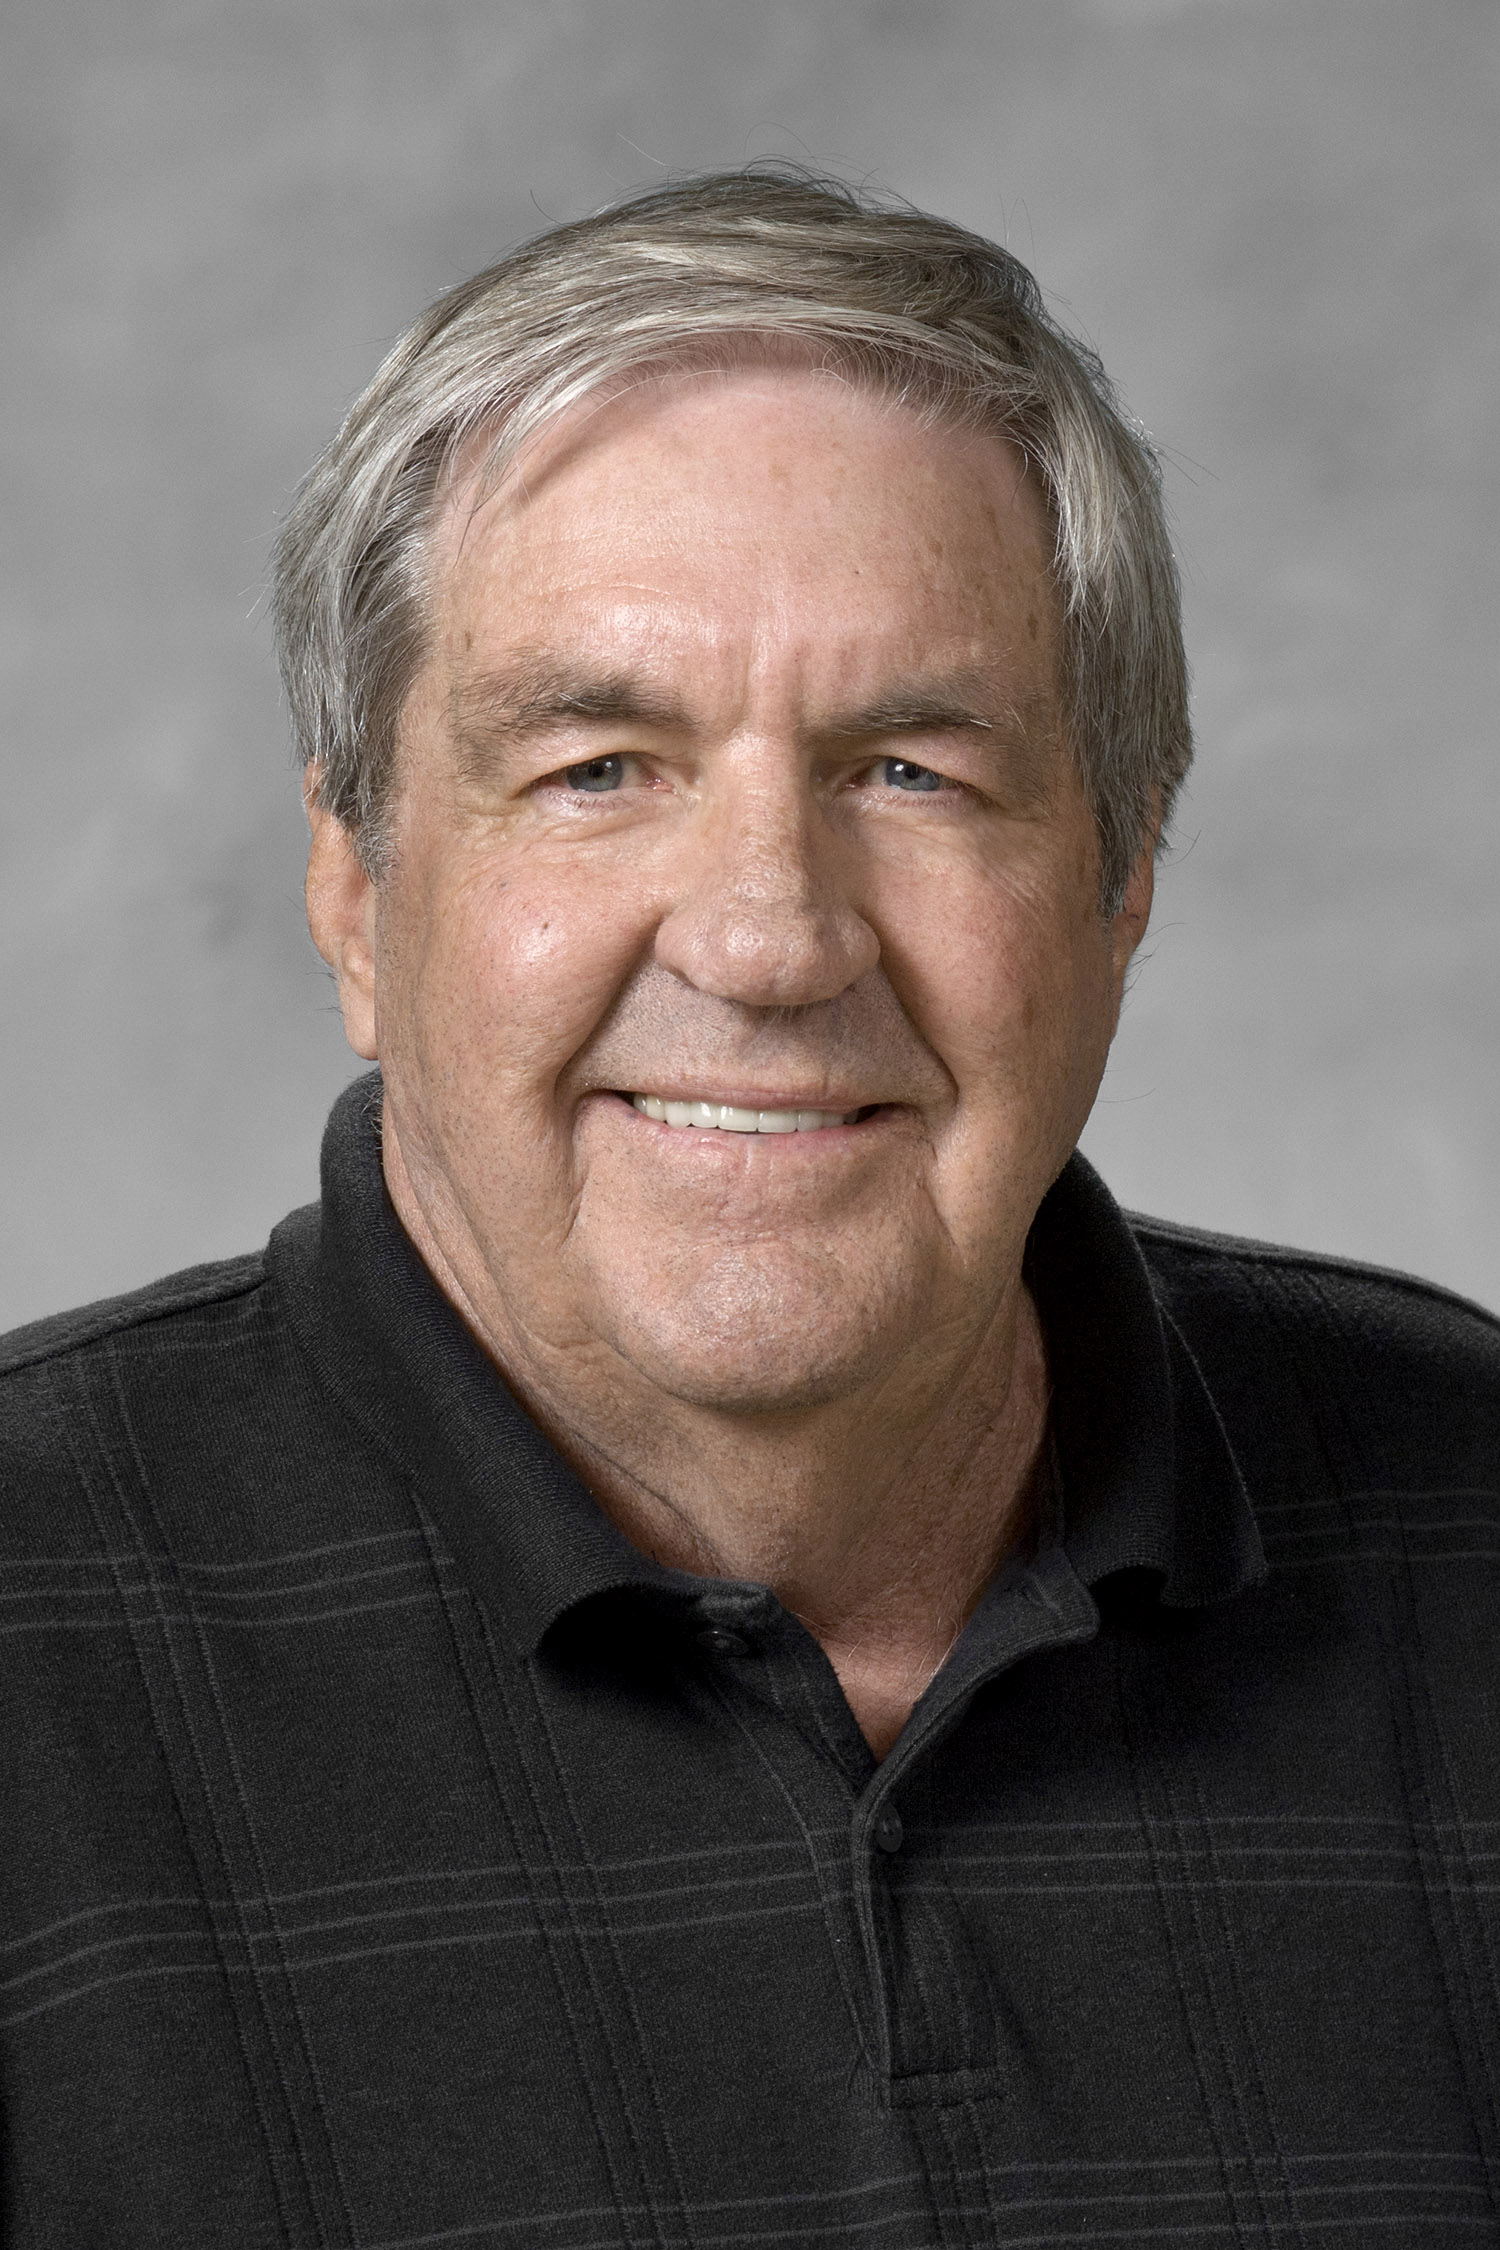 UCO instructor and former football coach Gary Howard received the Merv Merv Johnson Integrity in College Coaching Award given by the Oklahoma Chapter of the National Football Foundation and College Hall of Fame in June.